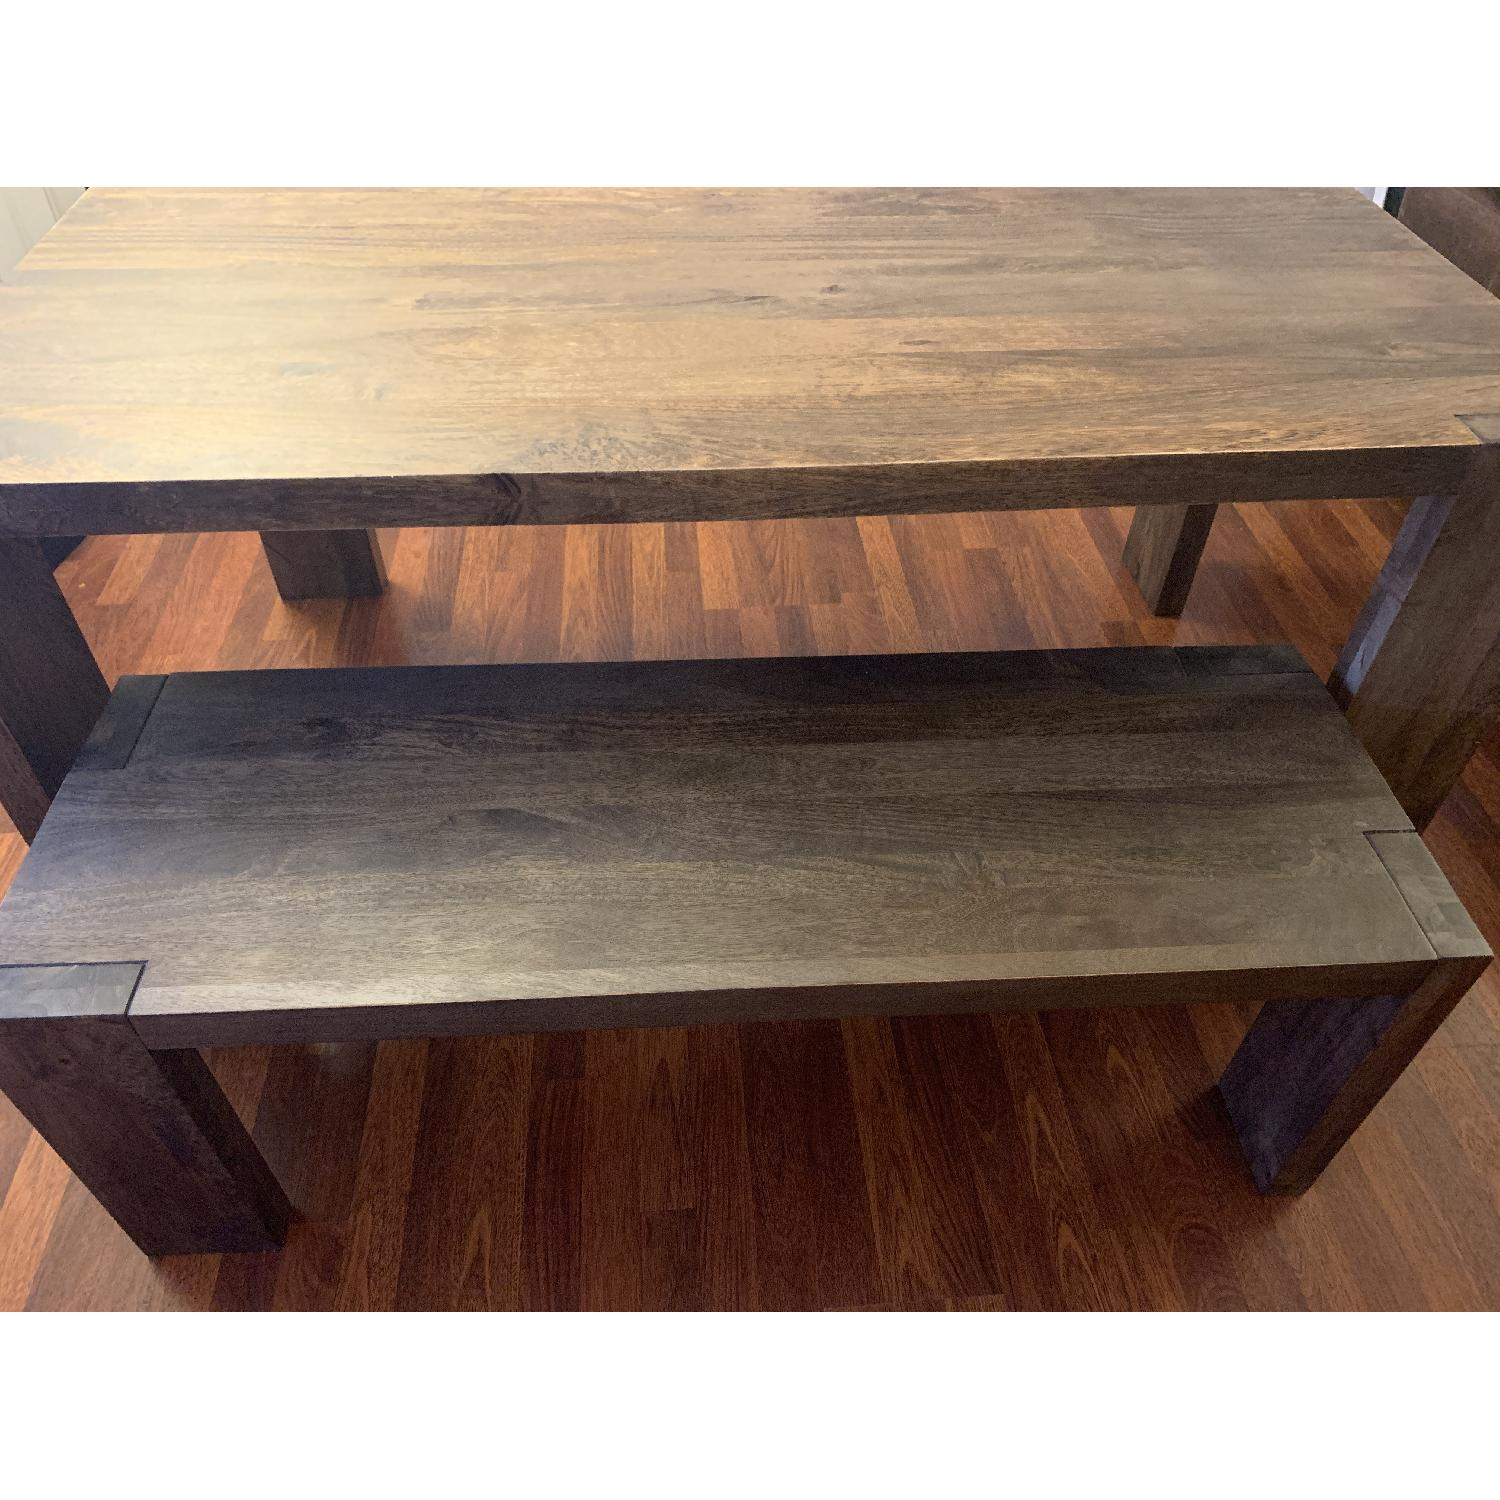 Crate & Barrel Big Sur Table w/ 1 Bench + 2 Leather Chairs-0